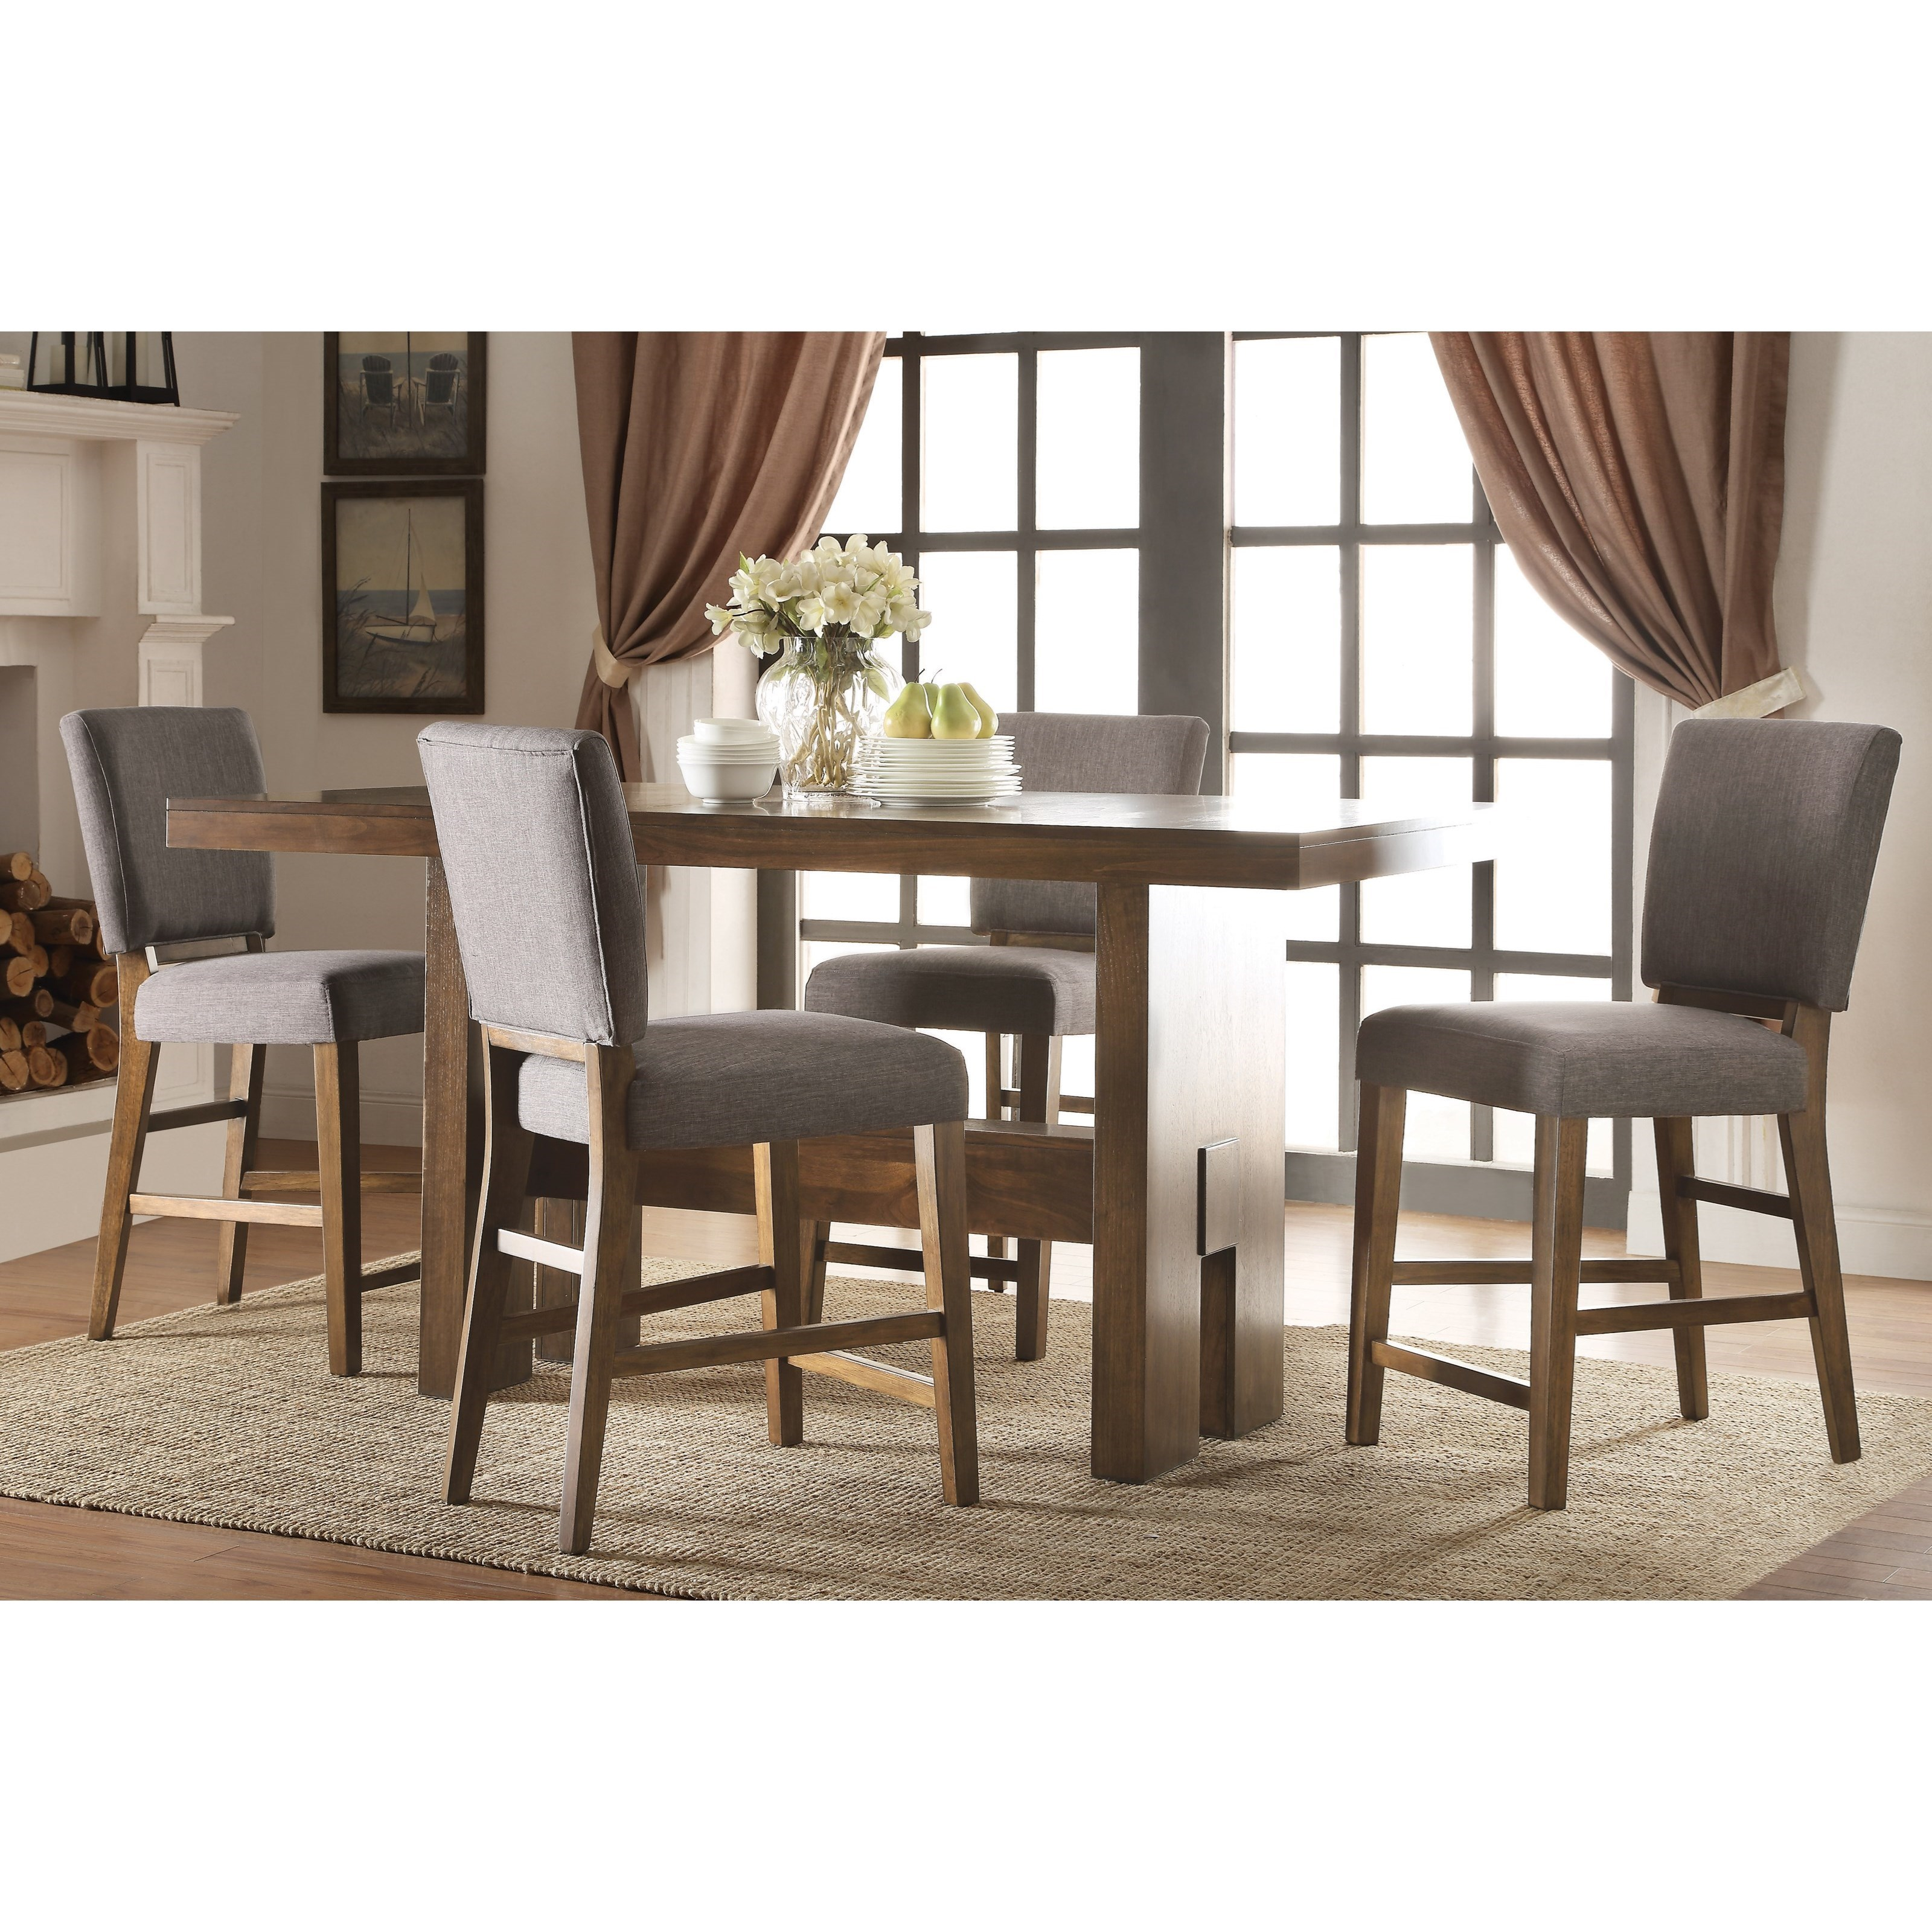 Riverside Furniture Terra Vista Upholstered Counter Stool Jacksonville Furniture Mart Bar Stools